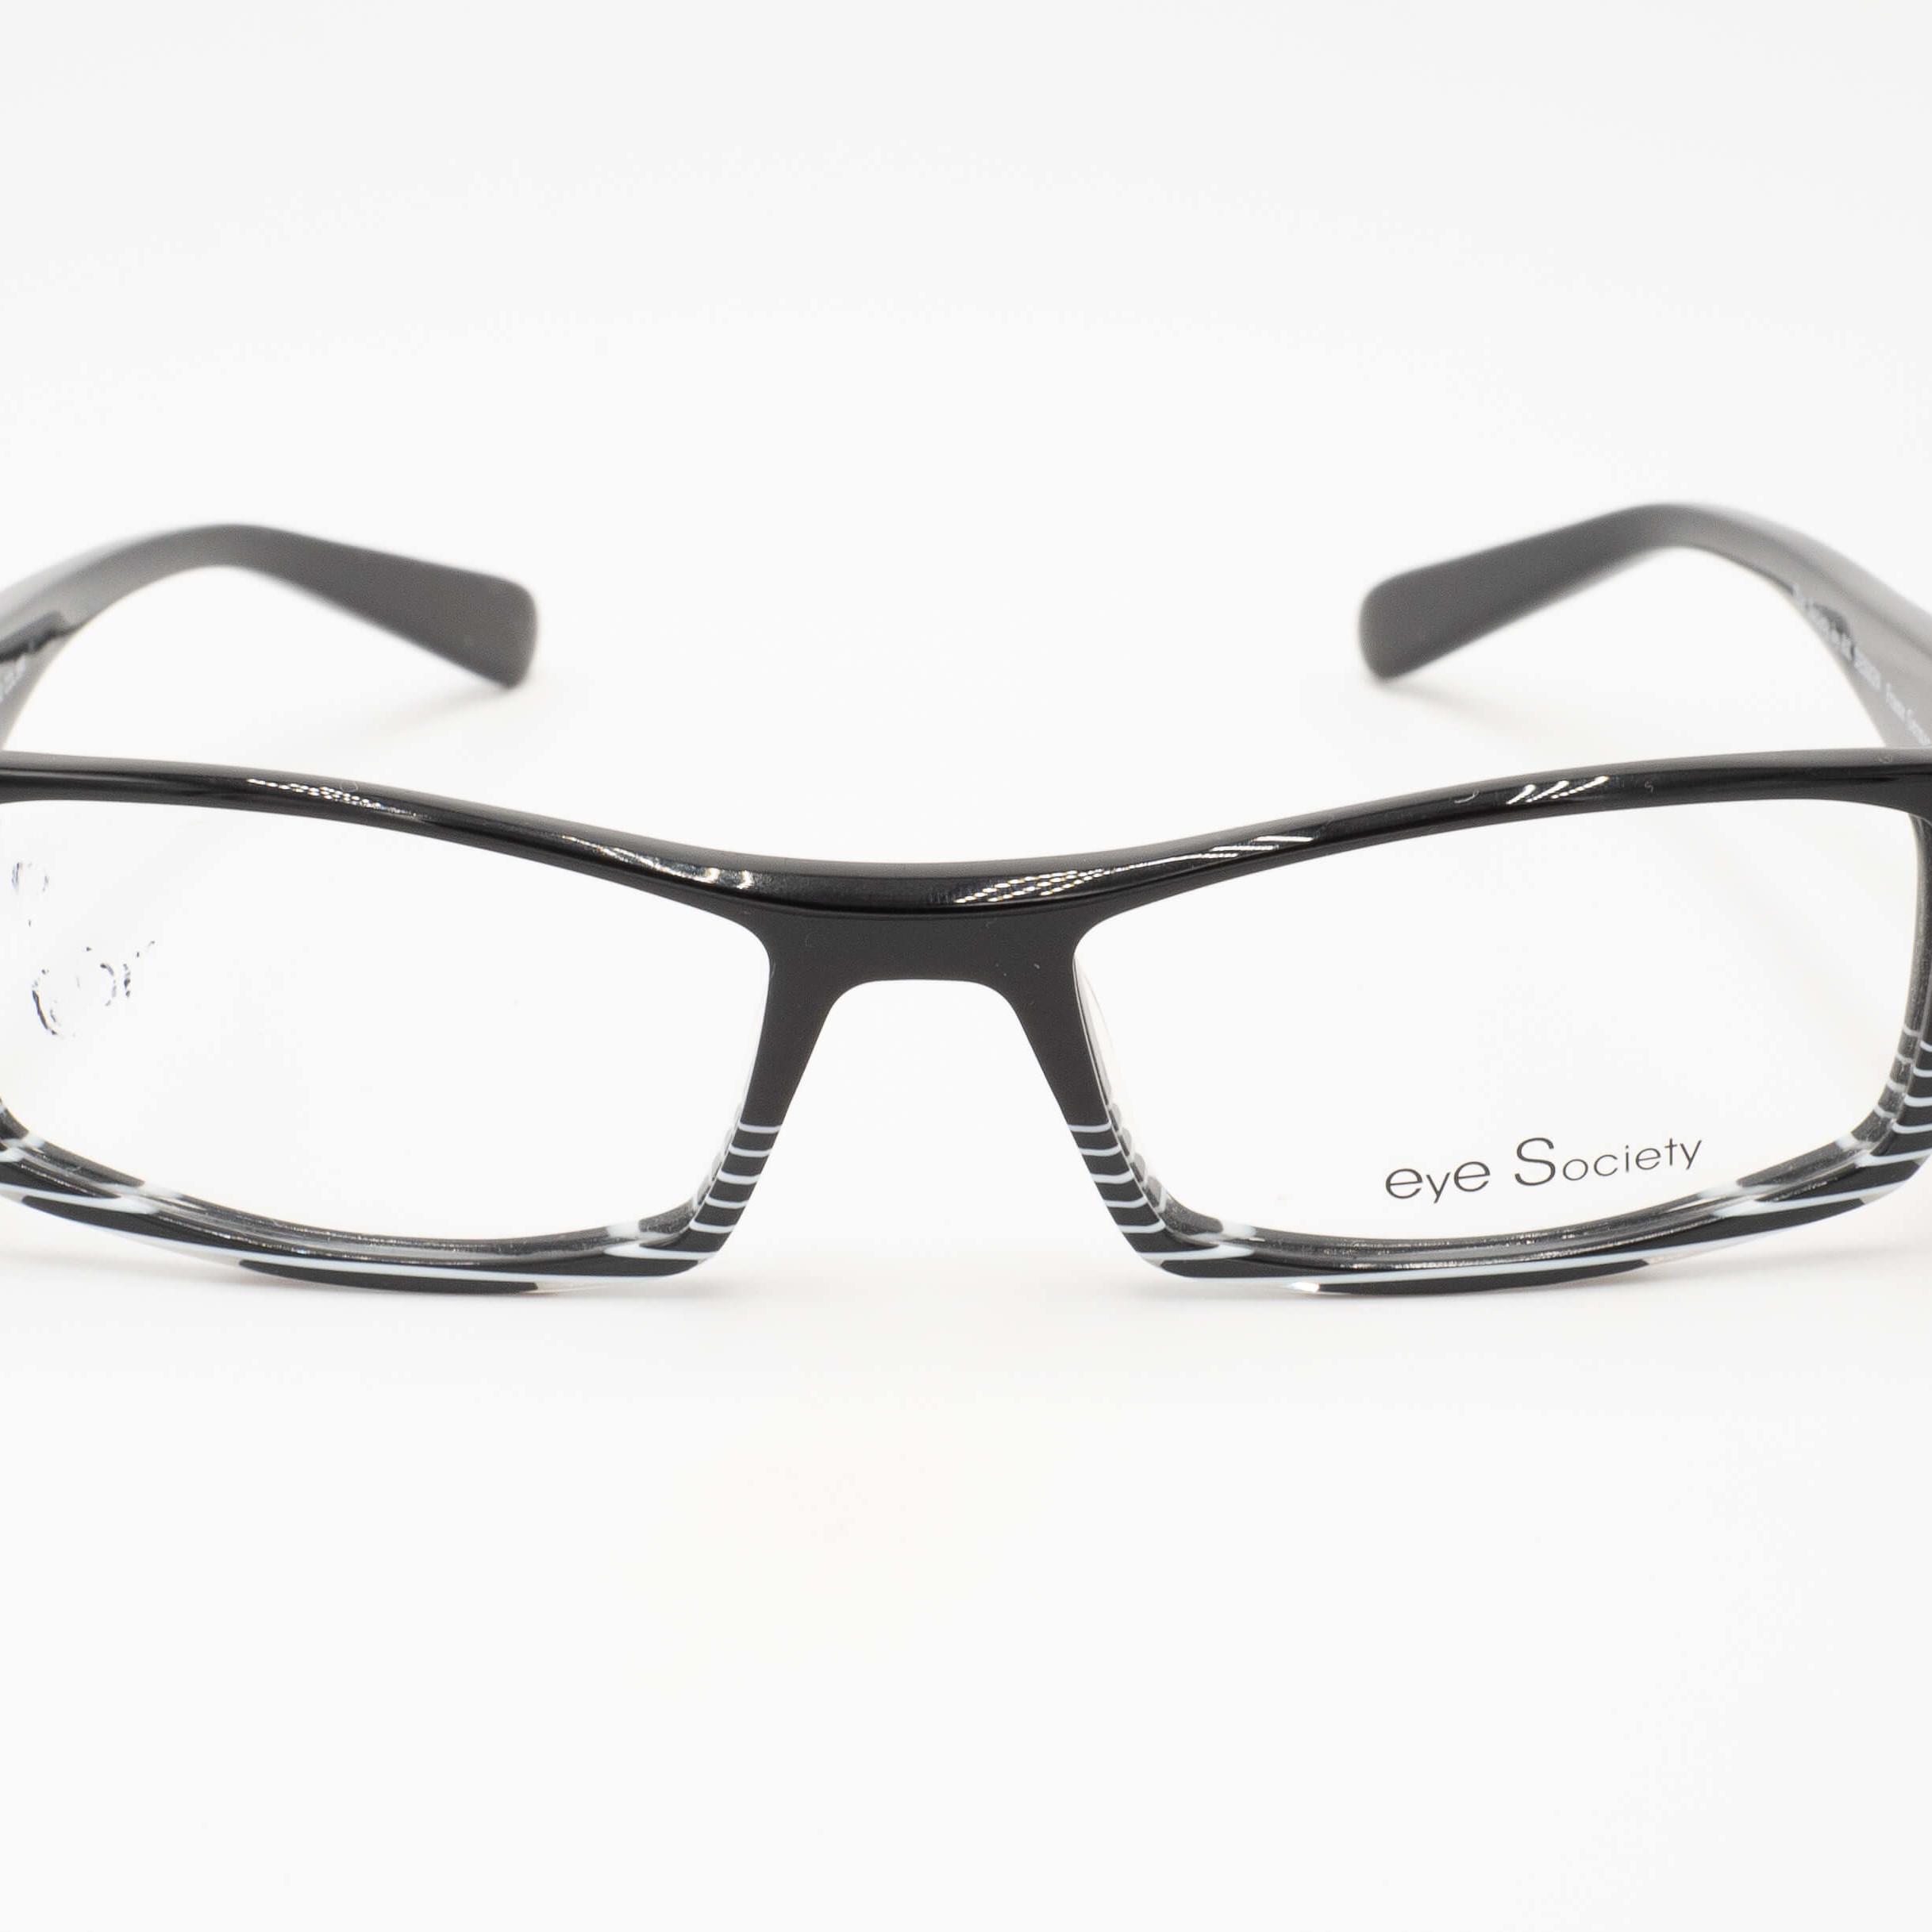 Eye Society - Brille (schwarz)